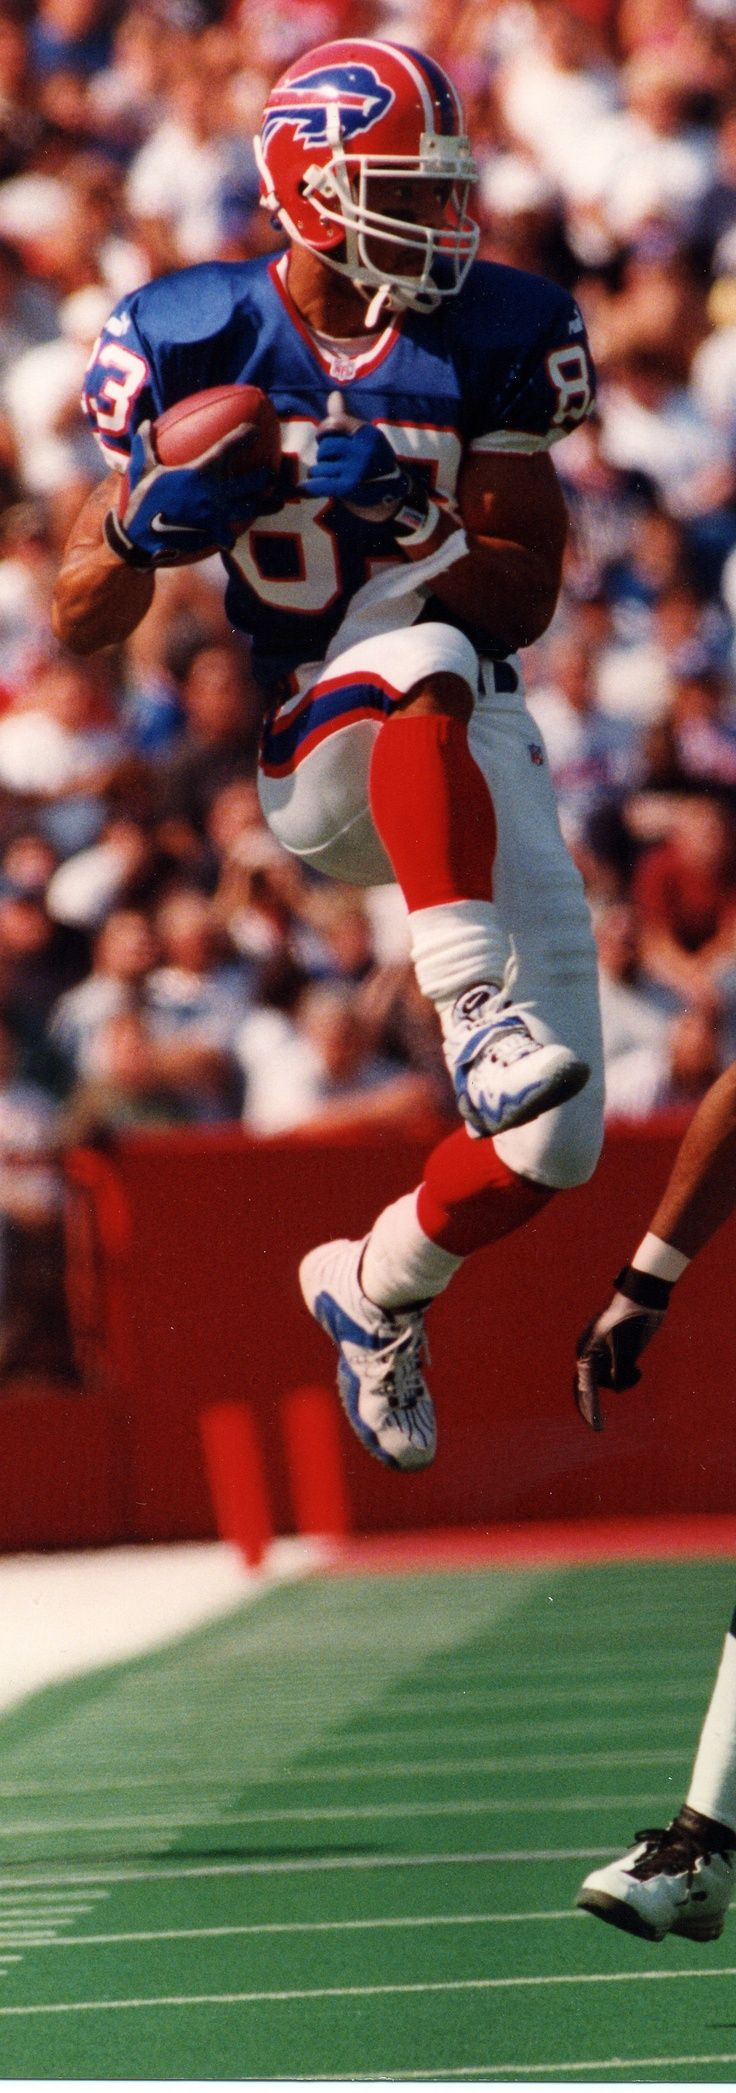 Bills wide reciever Andre Reed was named for the 7th time as a finalist for induction into the Pro Football Hall of Fame. If elected, Andre Reed would be the ninth Buffalo Bills Hall of Fame member joining Joe DeLamielleure, Jim Kelly, Marv Levy, Billy Shaw, O.J. Simpson, Bruce Smith, Thurman Thomas, and Ralph Wilson, Jr. The final inductees will be announced on February 2nd. REPIN to wish Andre good luck!